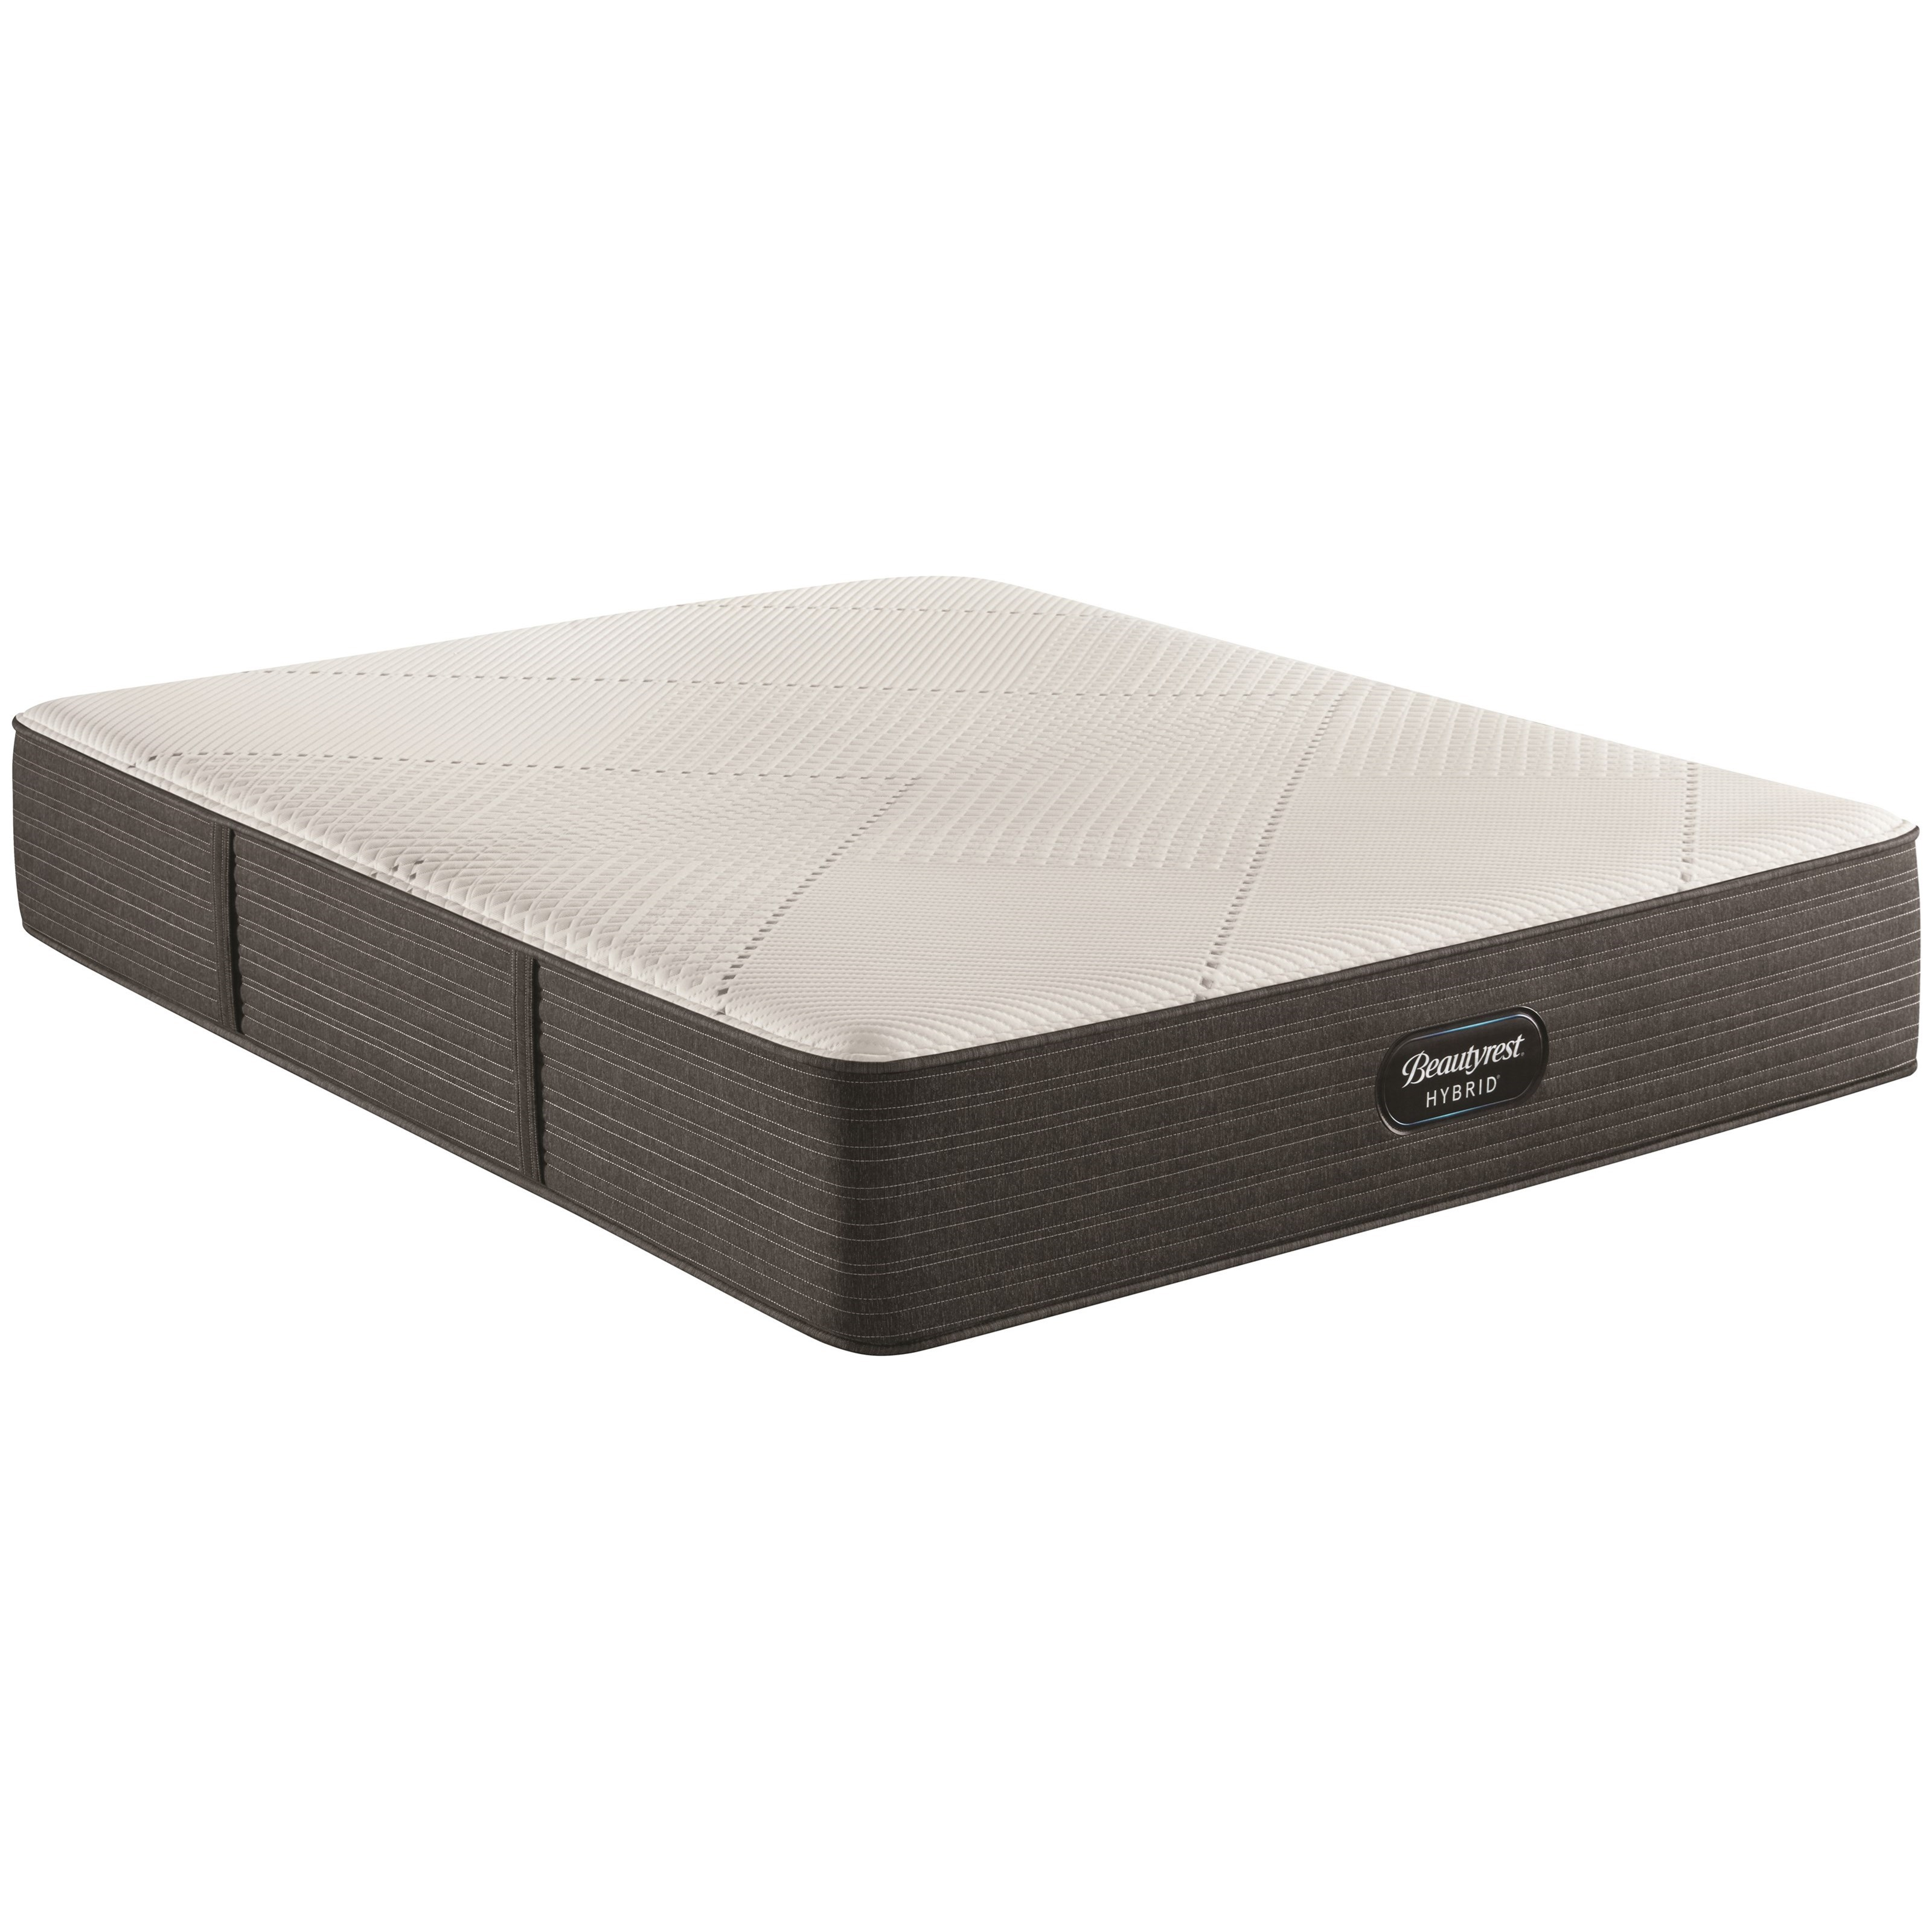 BRX1000-IP Extra Firm Hybrid Beautyrest King Extra Firm Hybrid Mattress by Beautyrest at SlumberWorld